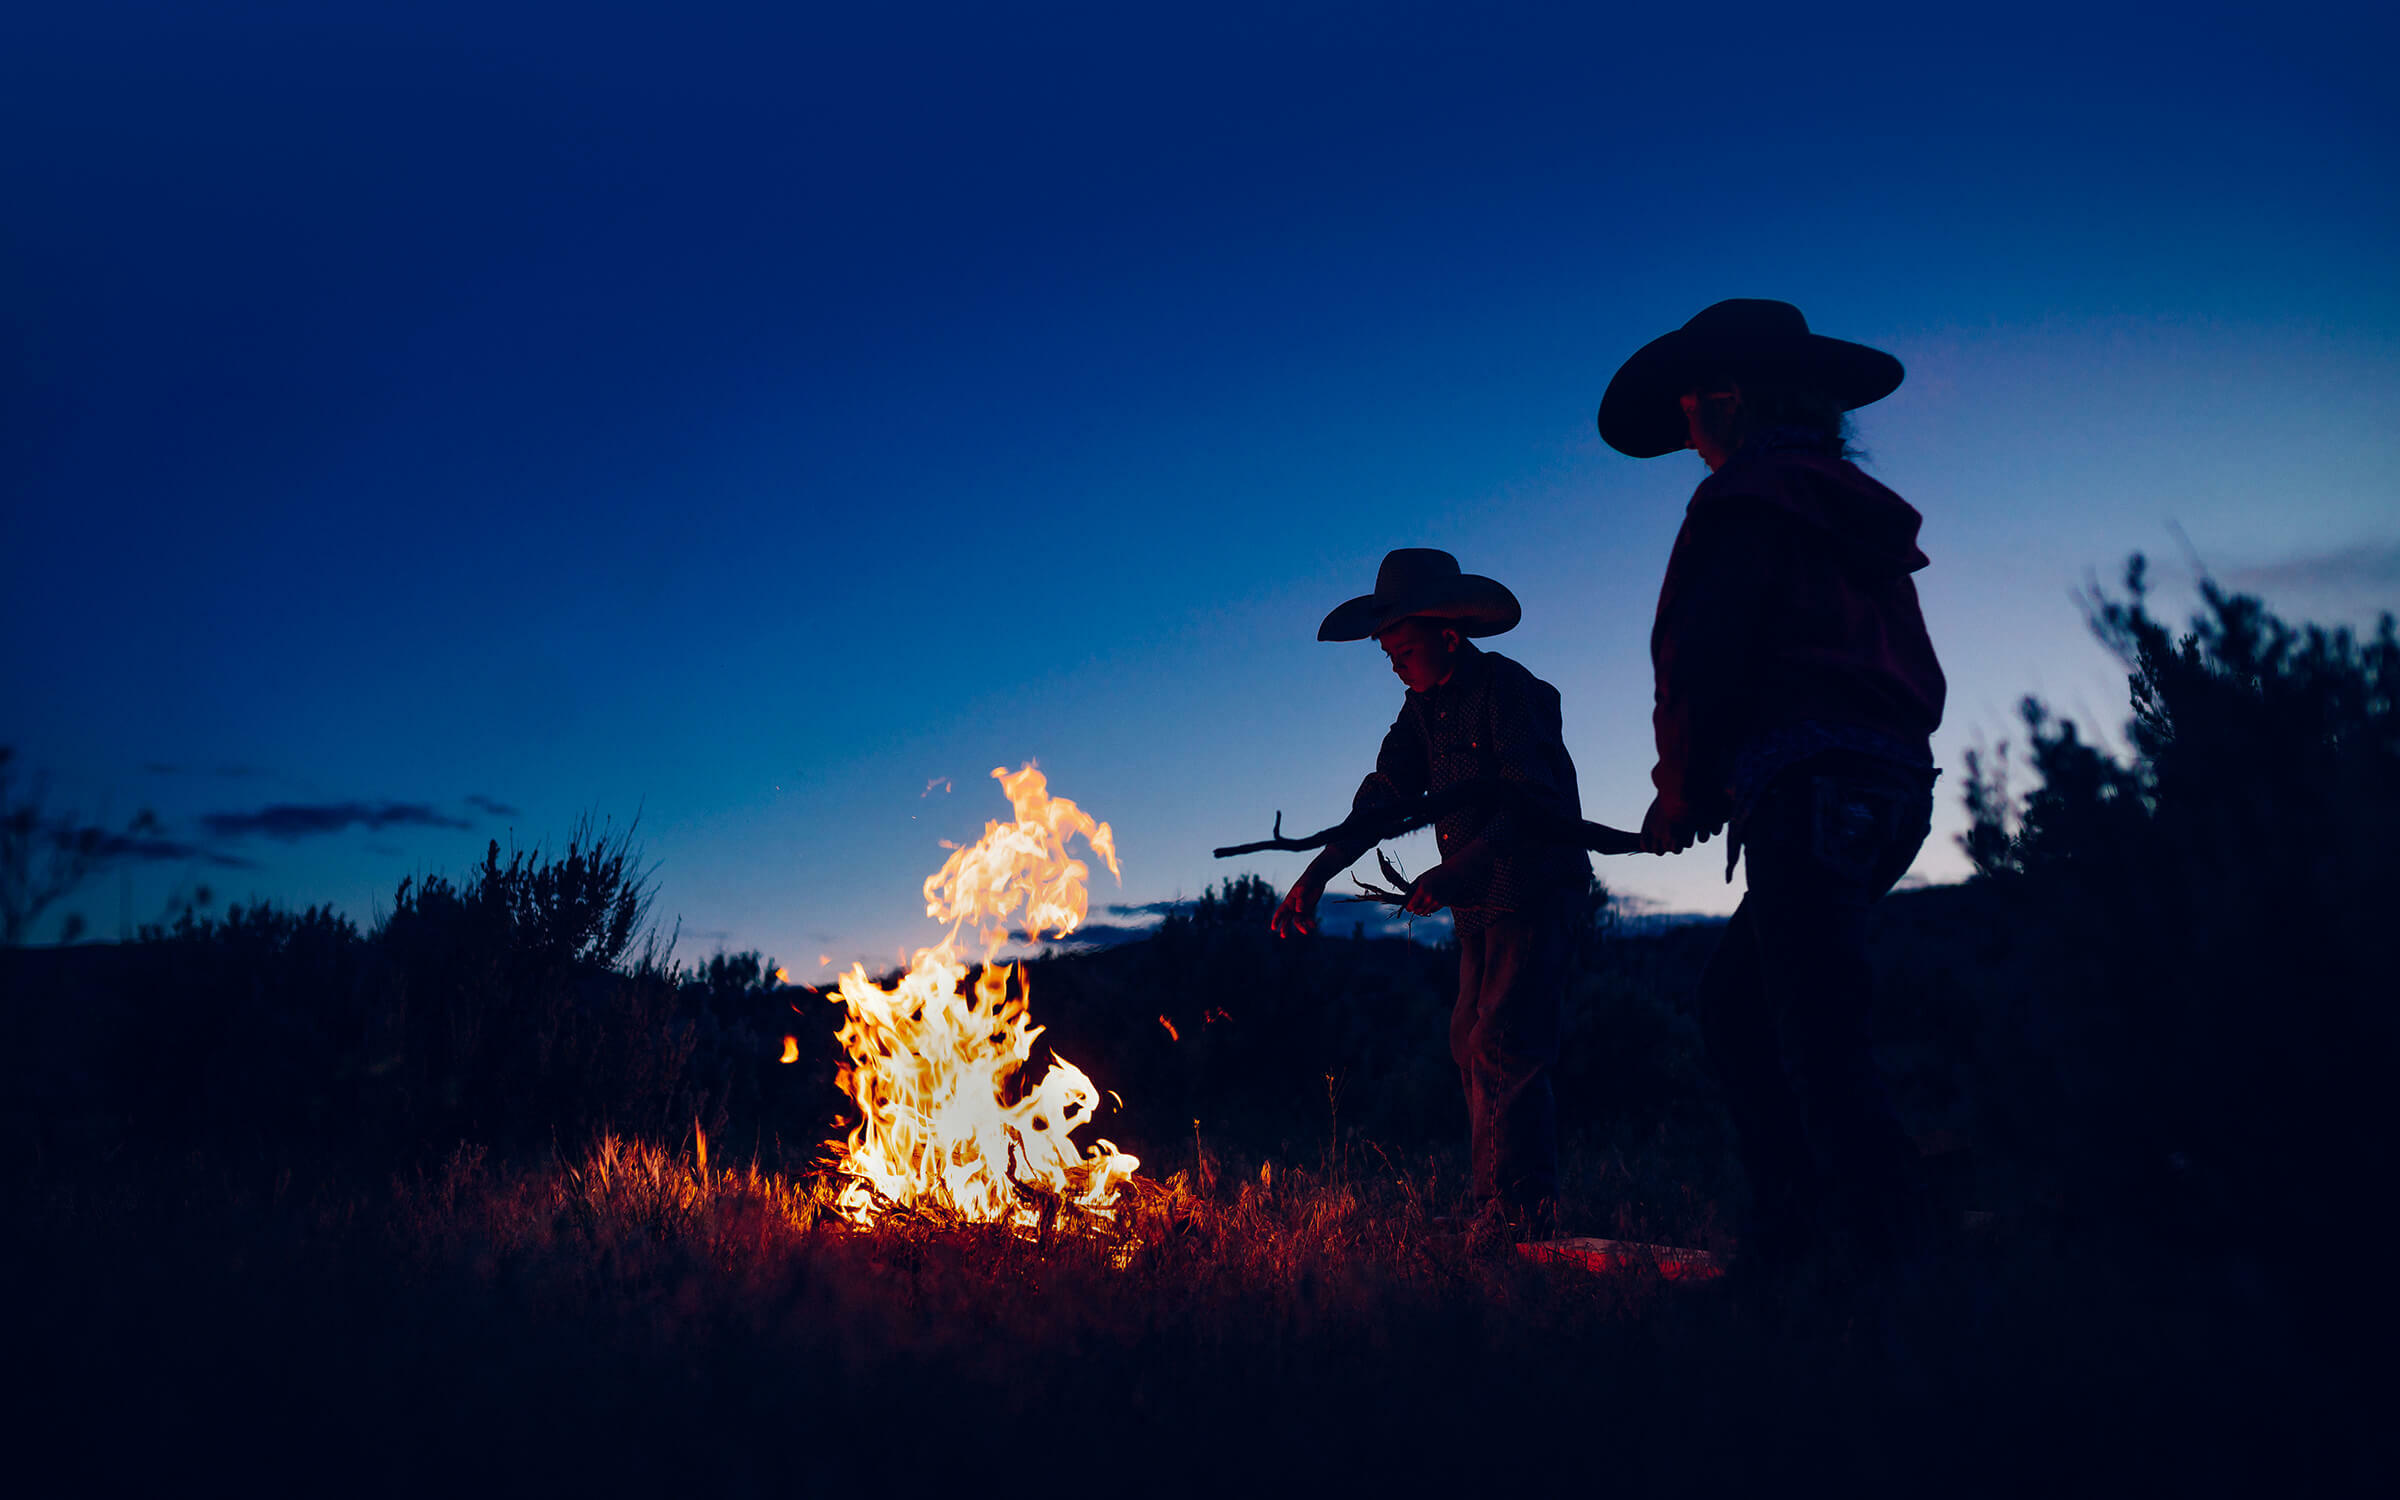 Two kids with cowboy hats tending a fire